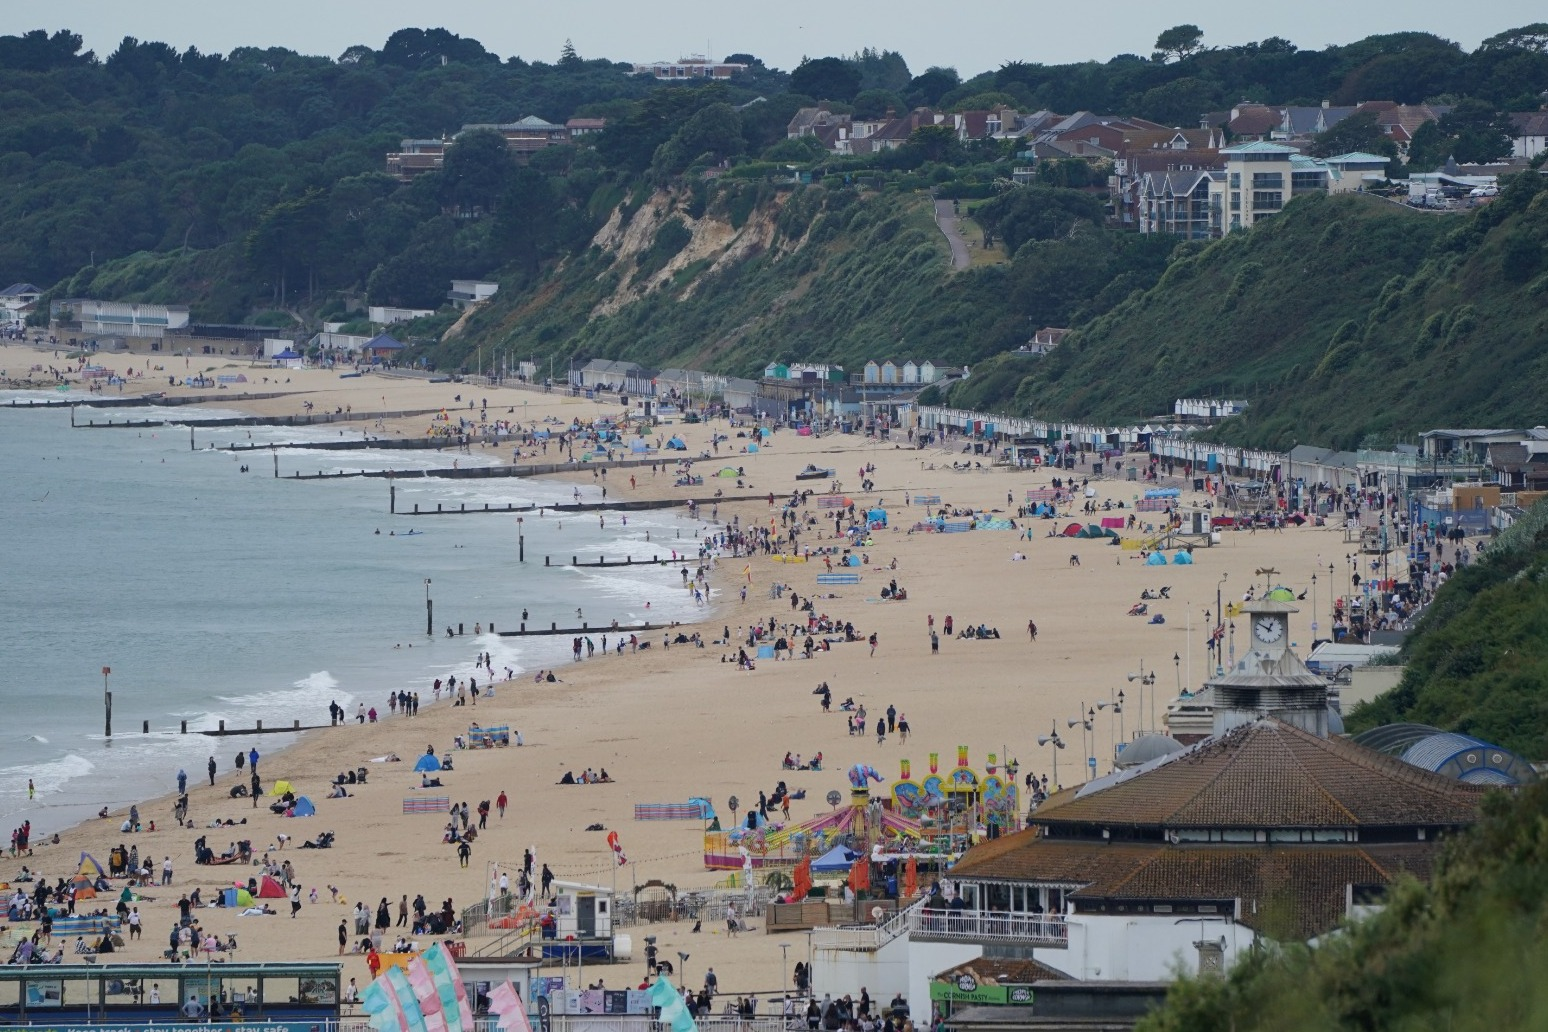 Shake-up of Covid travel rules set to benefit double-jabbed holidaymakers